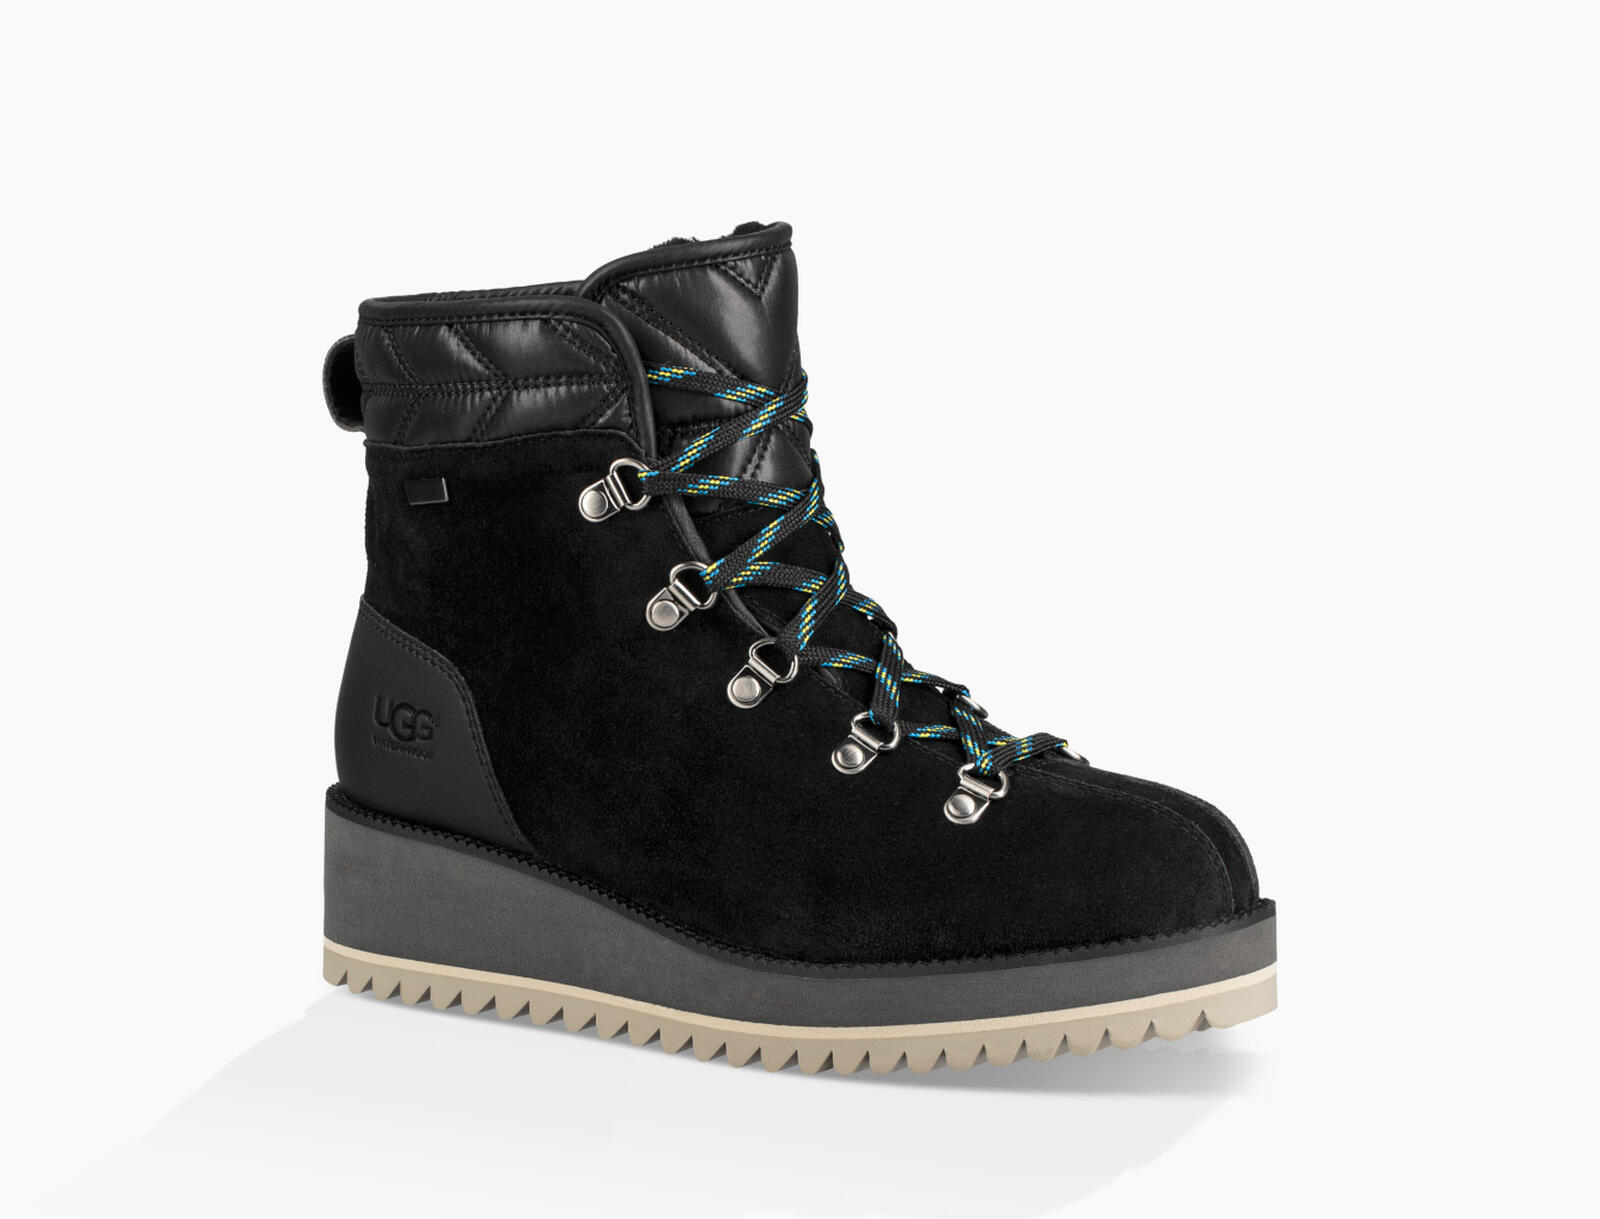 Birch Lace-Up Stivali Invernali